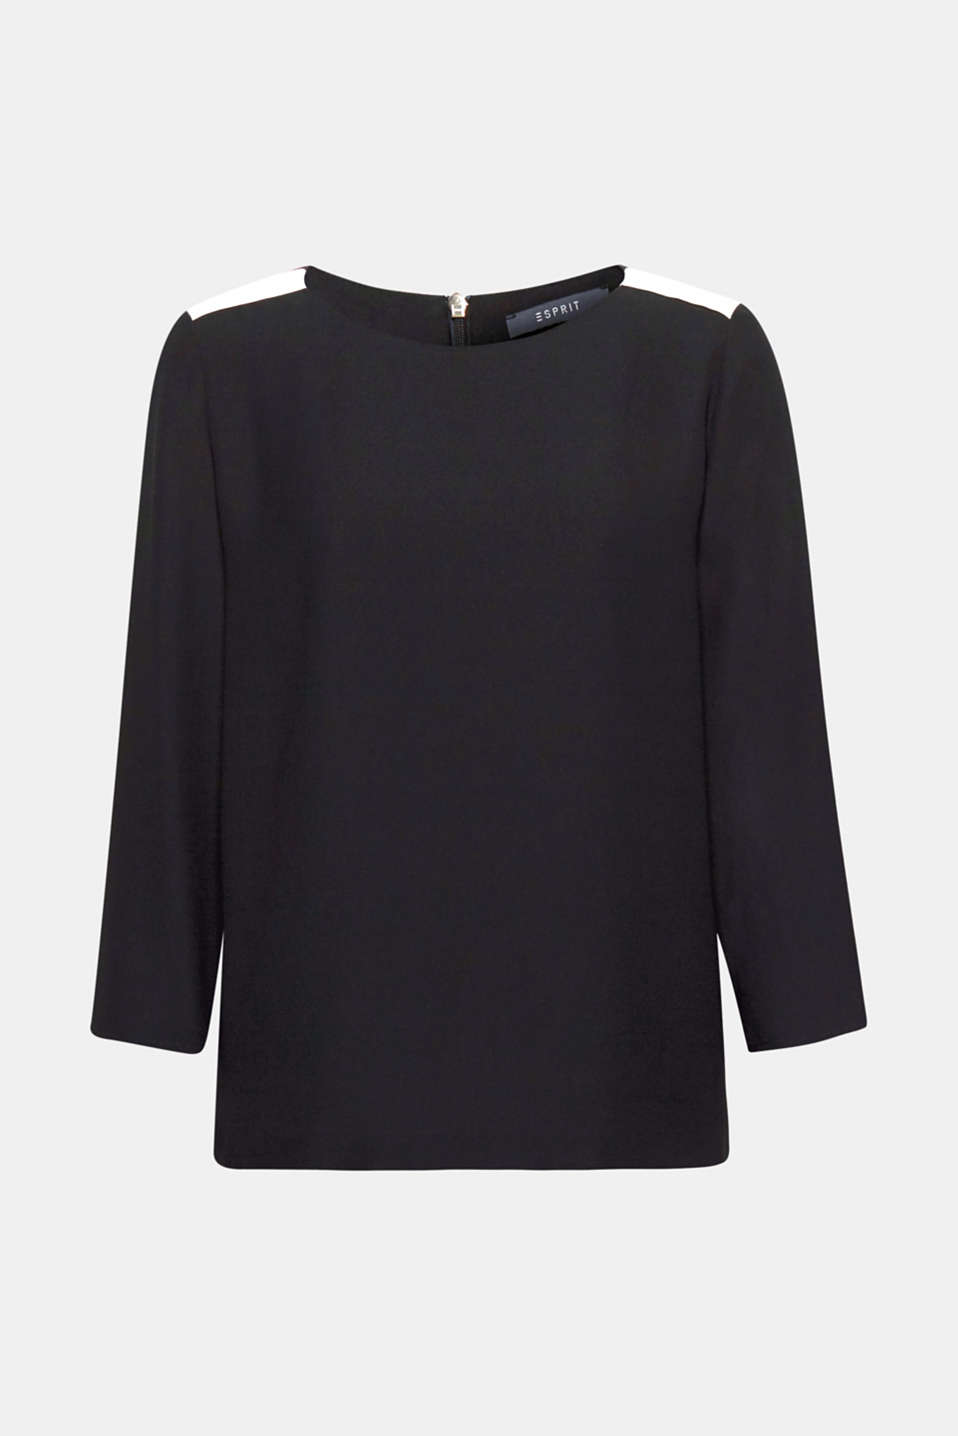 Appliquéd grosgrain ribbon on the shoulders is new and eye-catching on this crêpe blouse with 3/4-length sleeves.